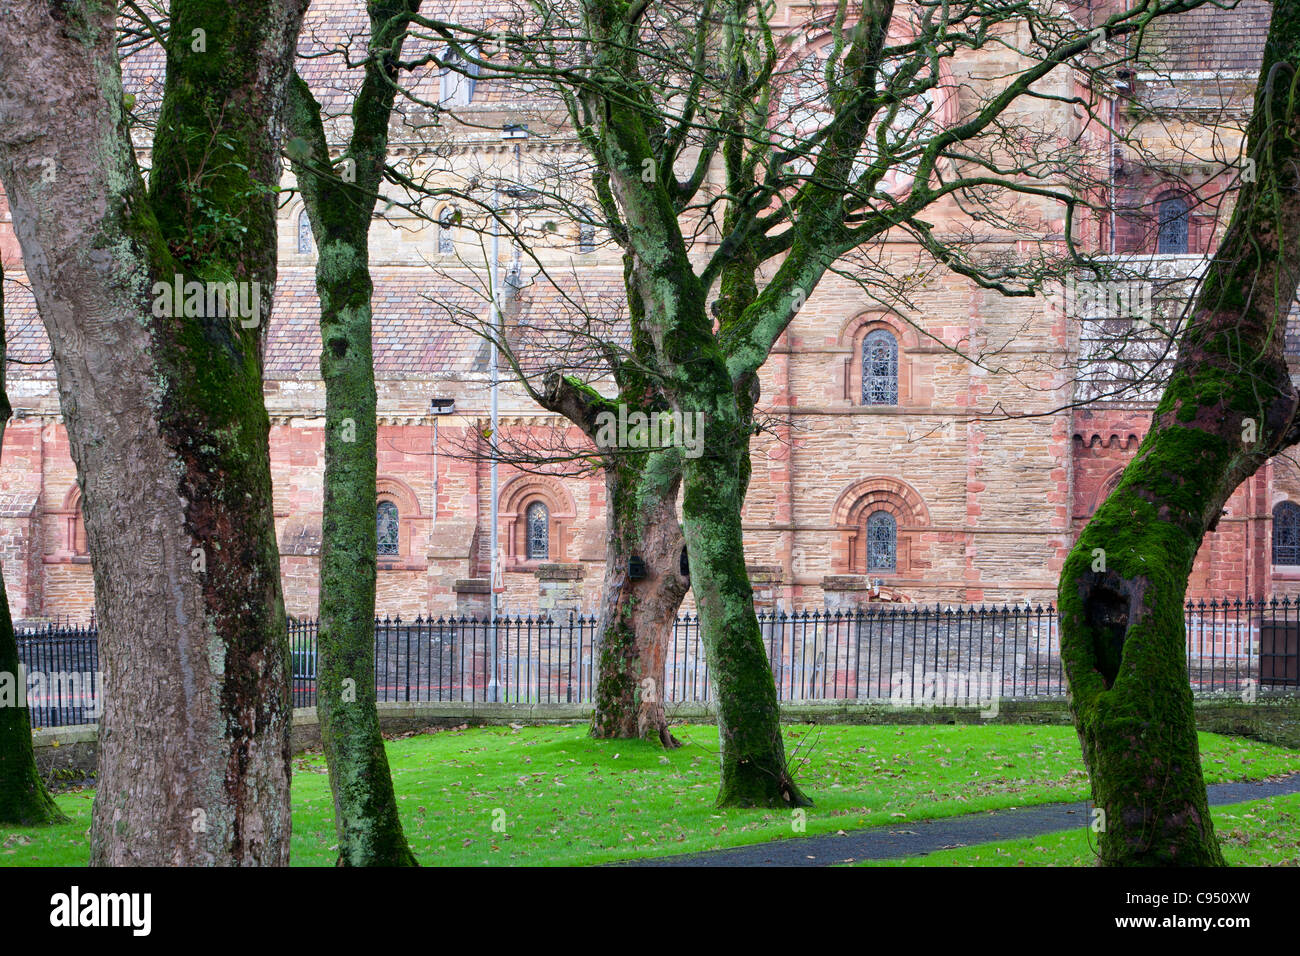 St Magnus Cathedral in Kirkwall on mainland Orkney. - Stock Image